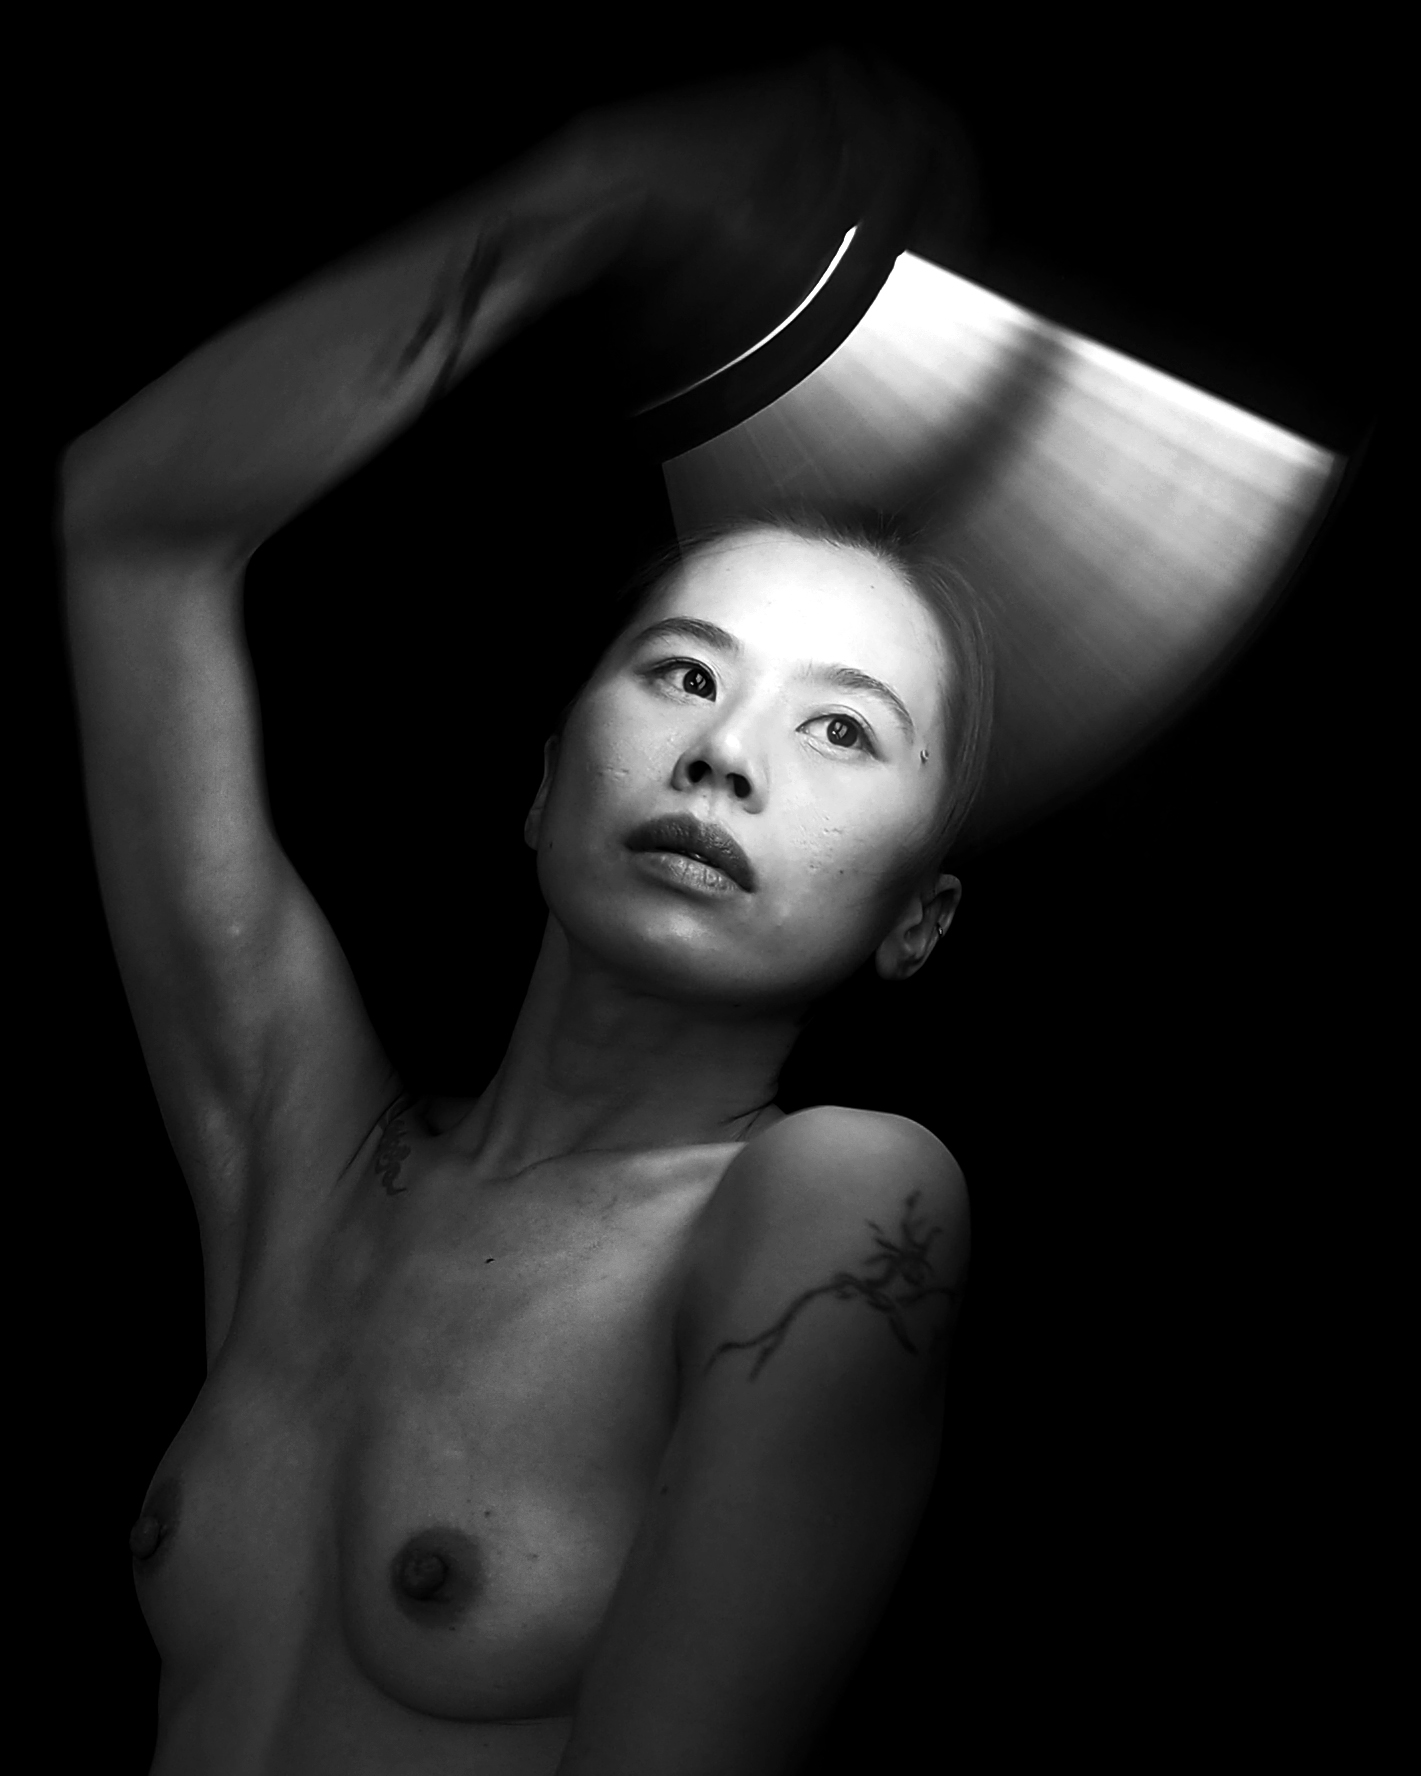 2021 What if I got lost would you keep me safe as usually? photo by Suelynee ho, Taiwan artist Photographer